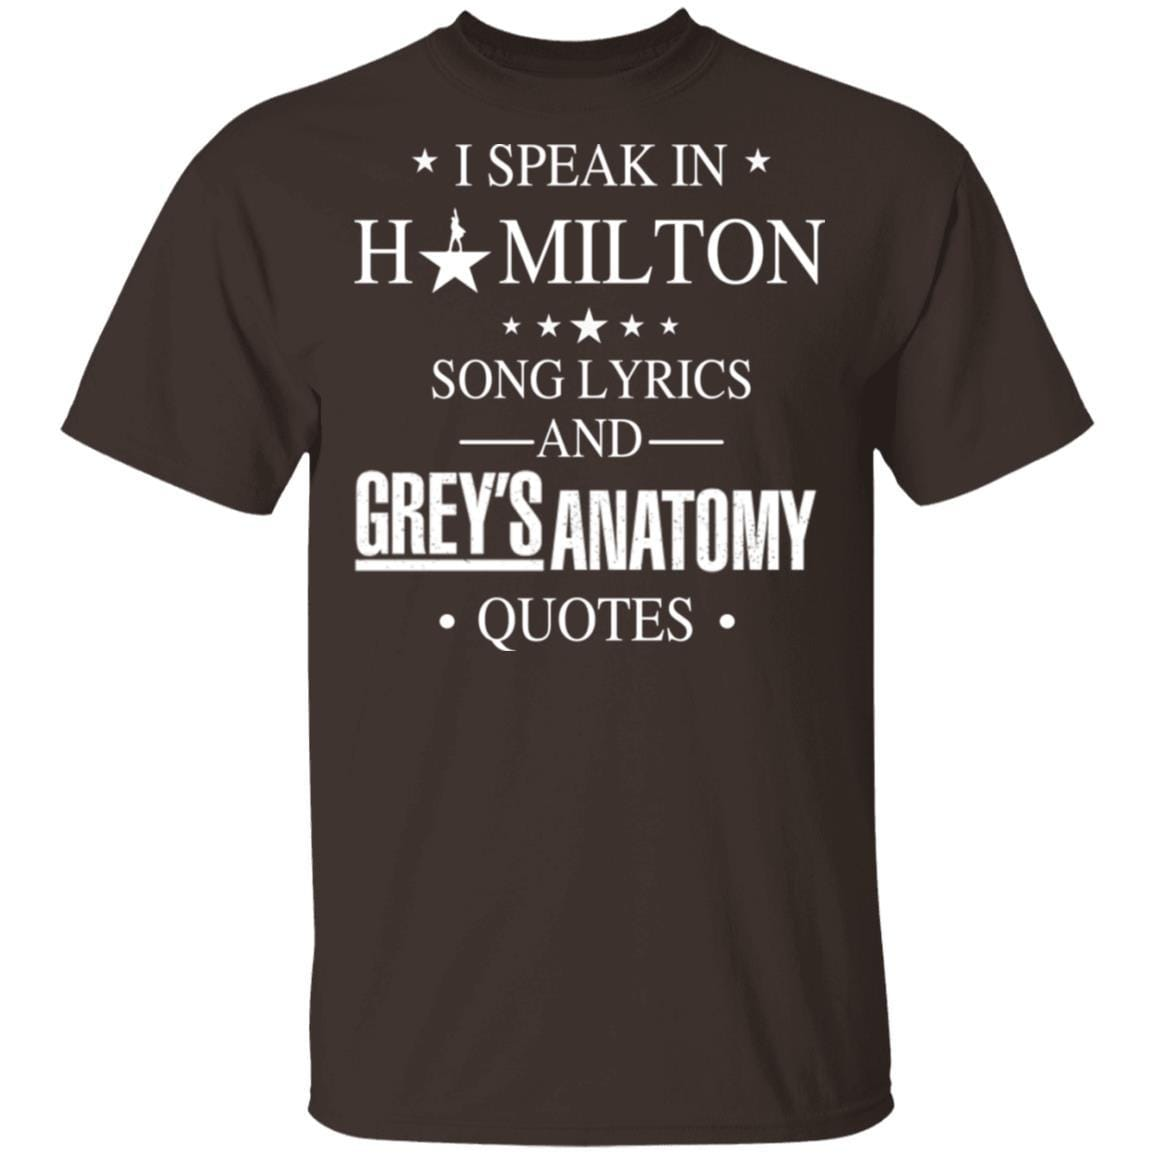 I Speak In Hamilton Song Lyrics And Grey's Anatomy Quotes T-Shirts, Hoodies 1049-9956-88445038-48152 - Tee Ript